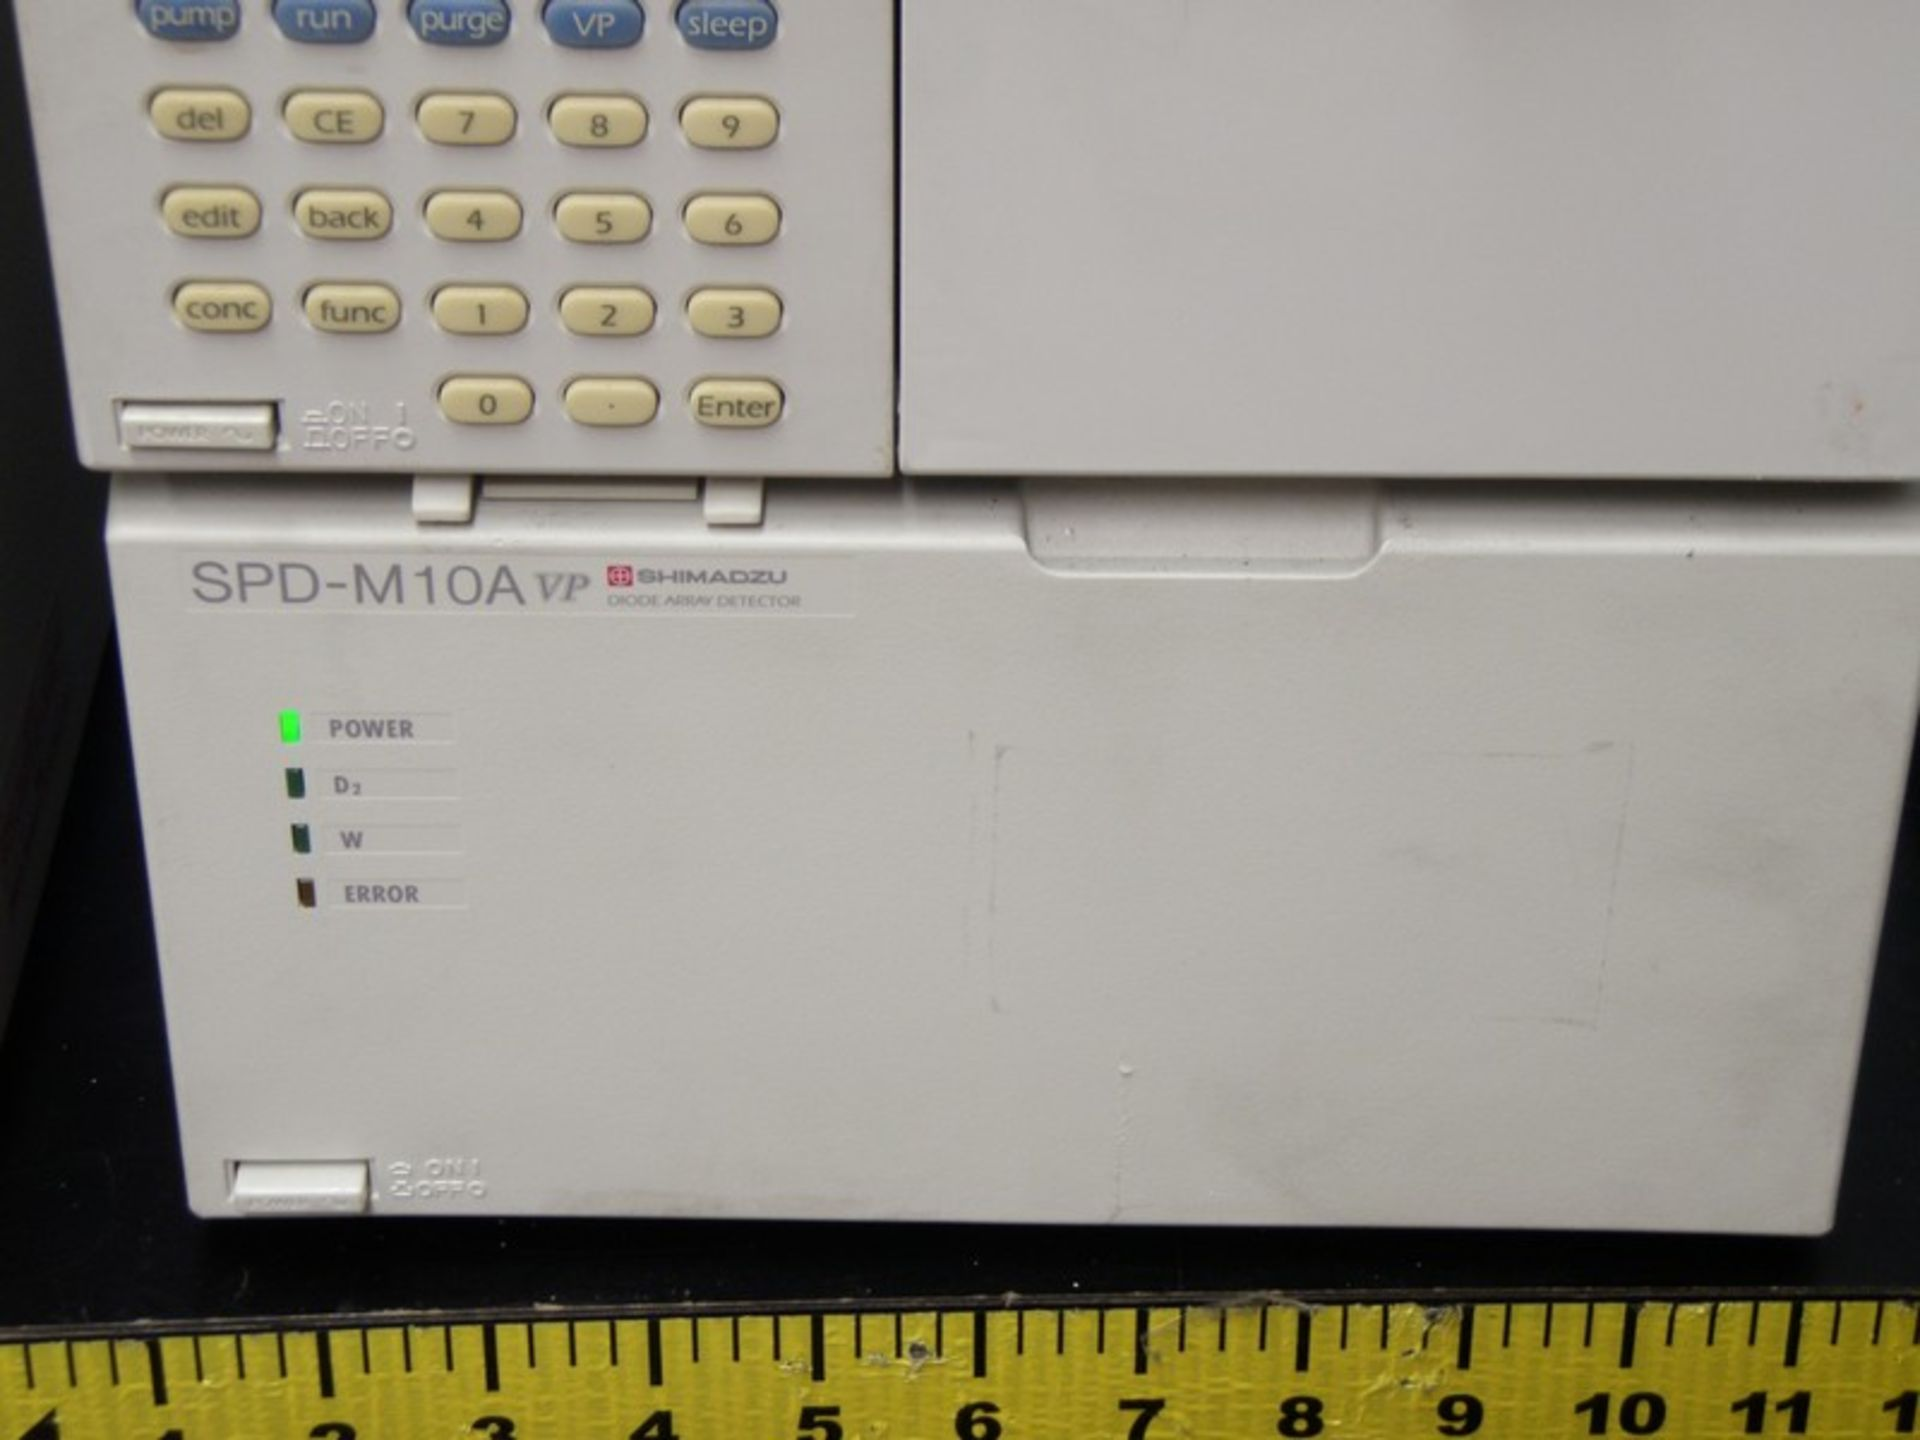 Lot 249 - Shimadzu LC-10 HPLC System Containing: CTO-10AC Column Oven, DGU-14A Degasser, SCL-10A System